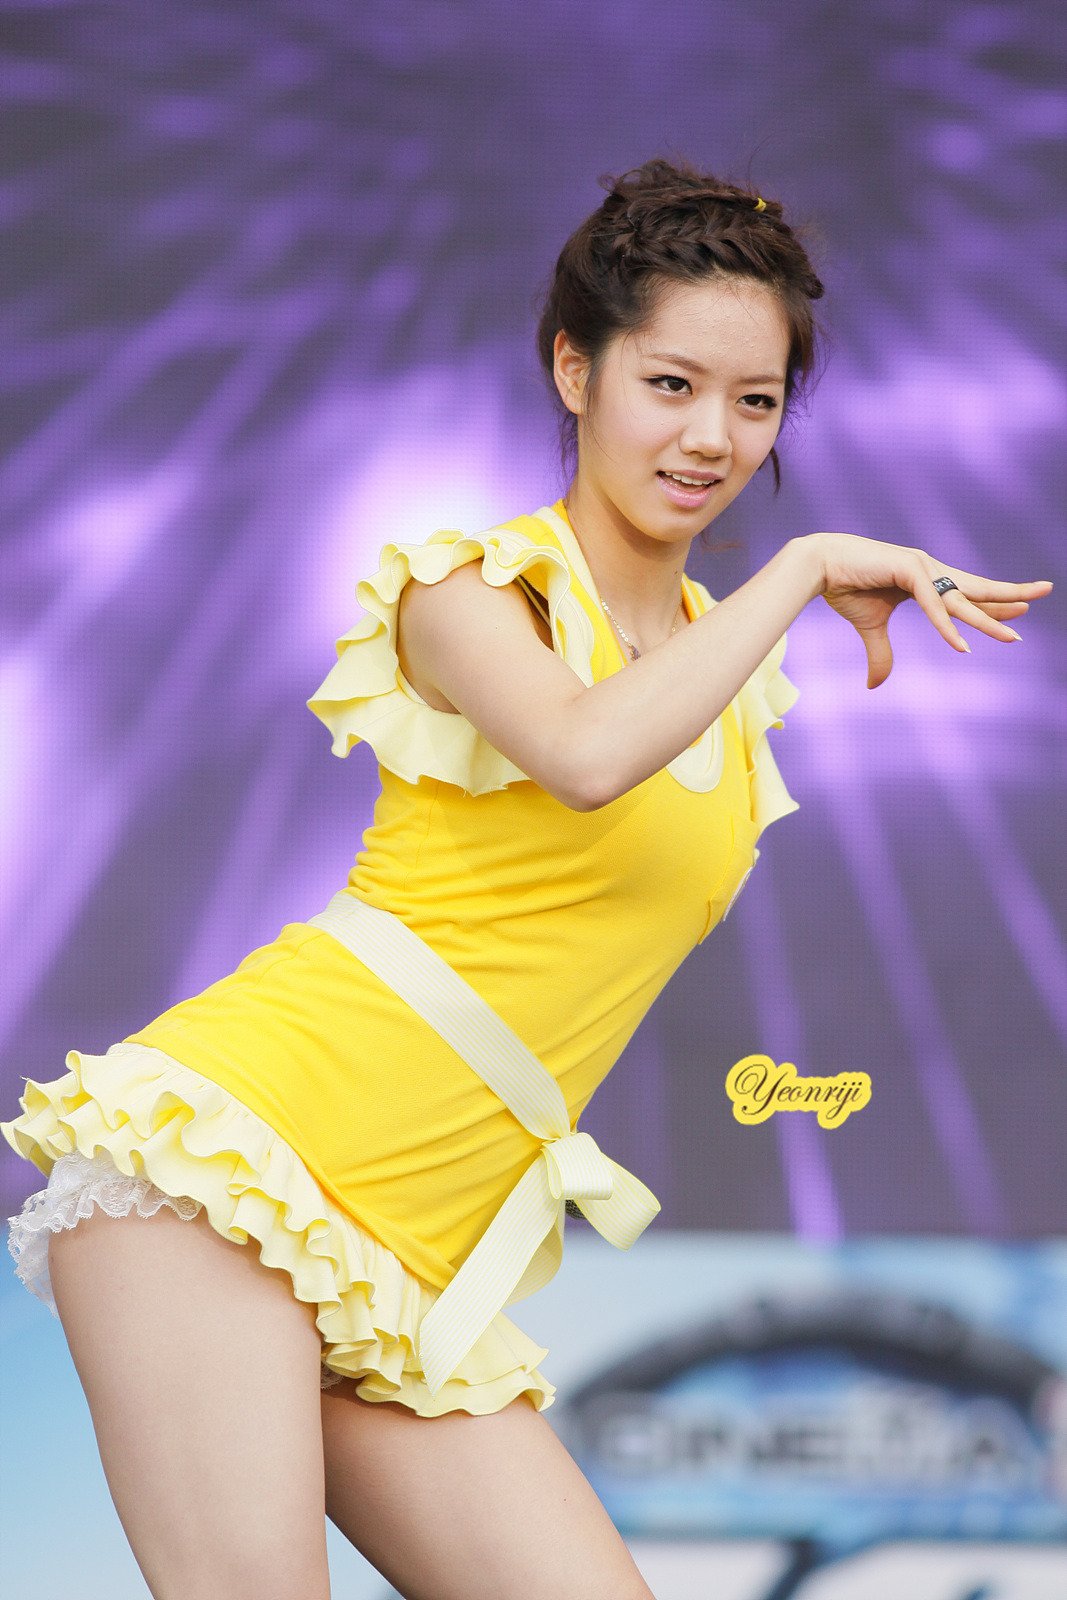 Lee Hyeri Androidiphone Wallpaper 42200 - Asiachan Kpop Image Board-8823